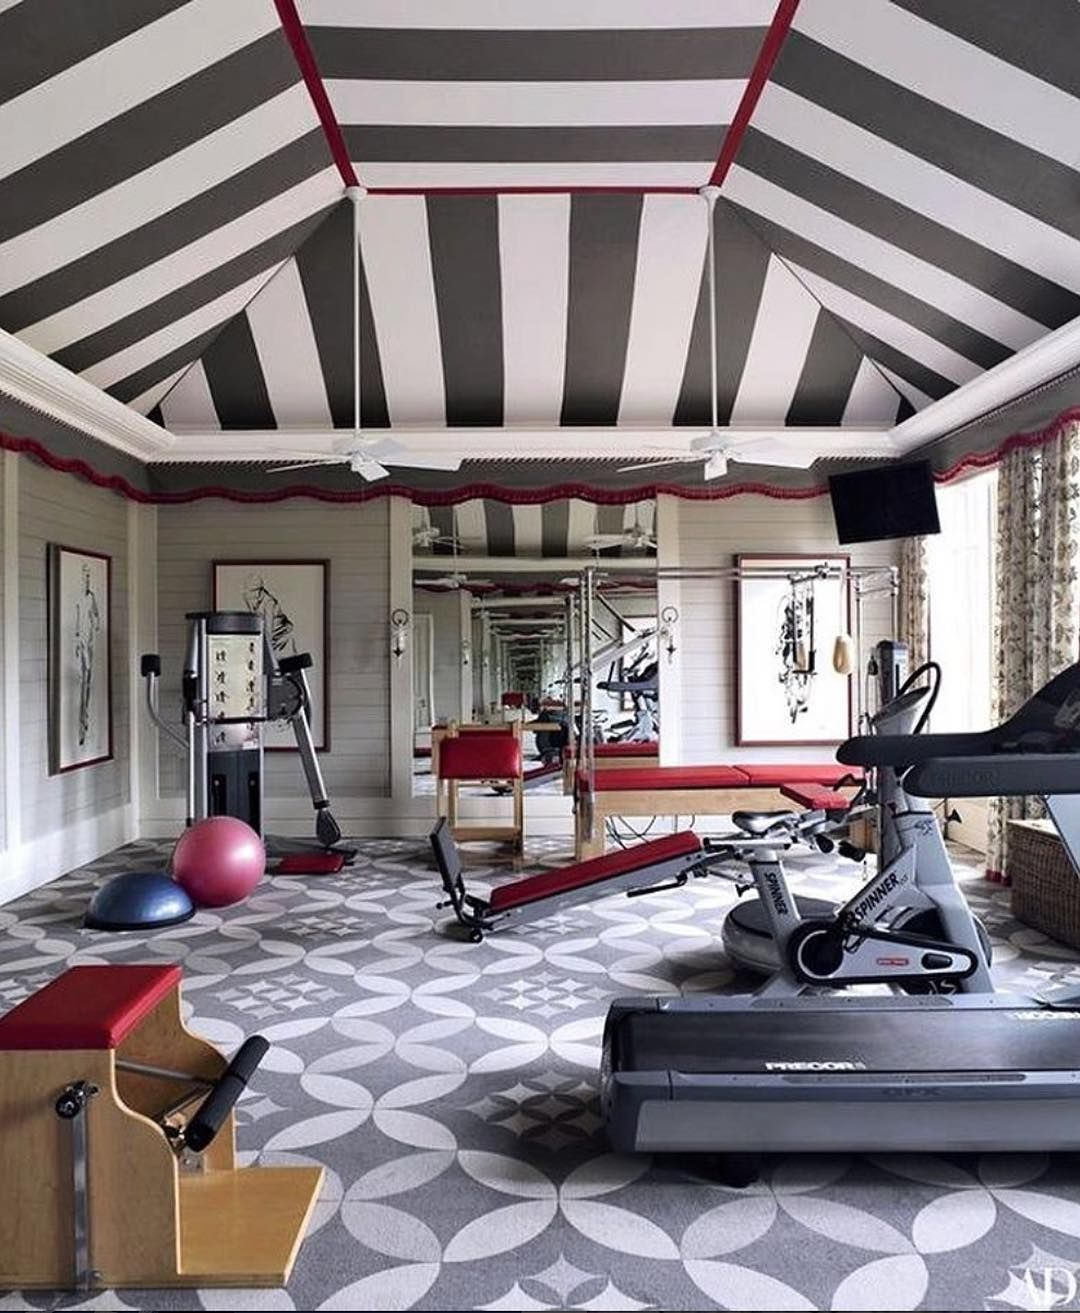 Home Gym Design Ideas Basement: Now That's A Dramatic #black & #white Ceiling For A # Gym